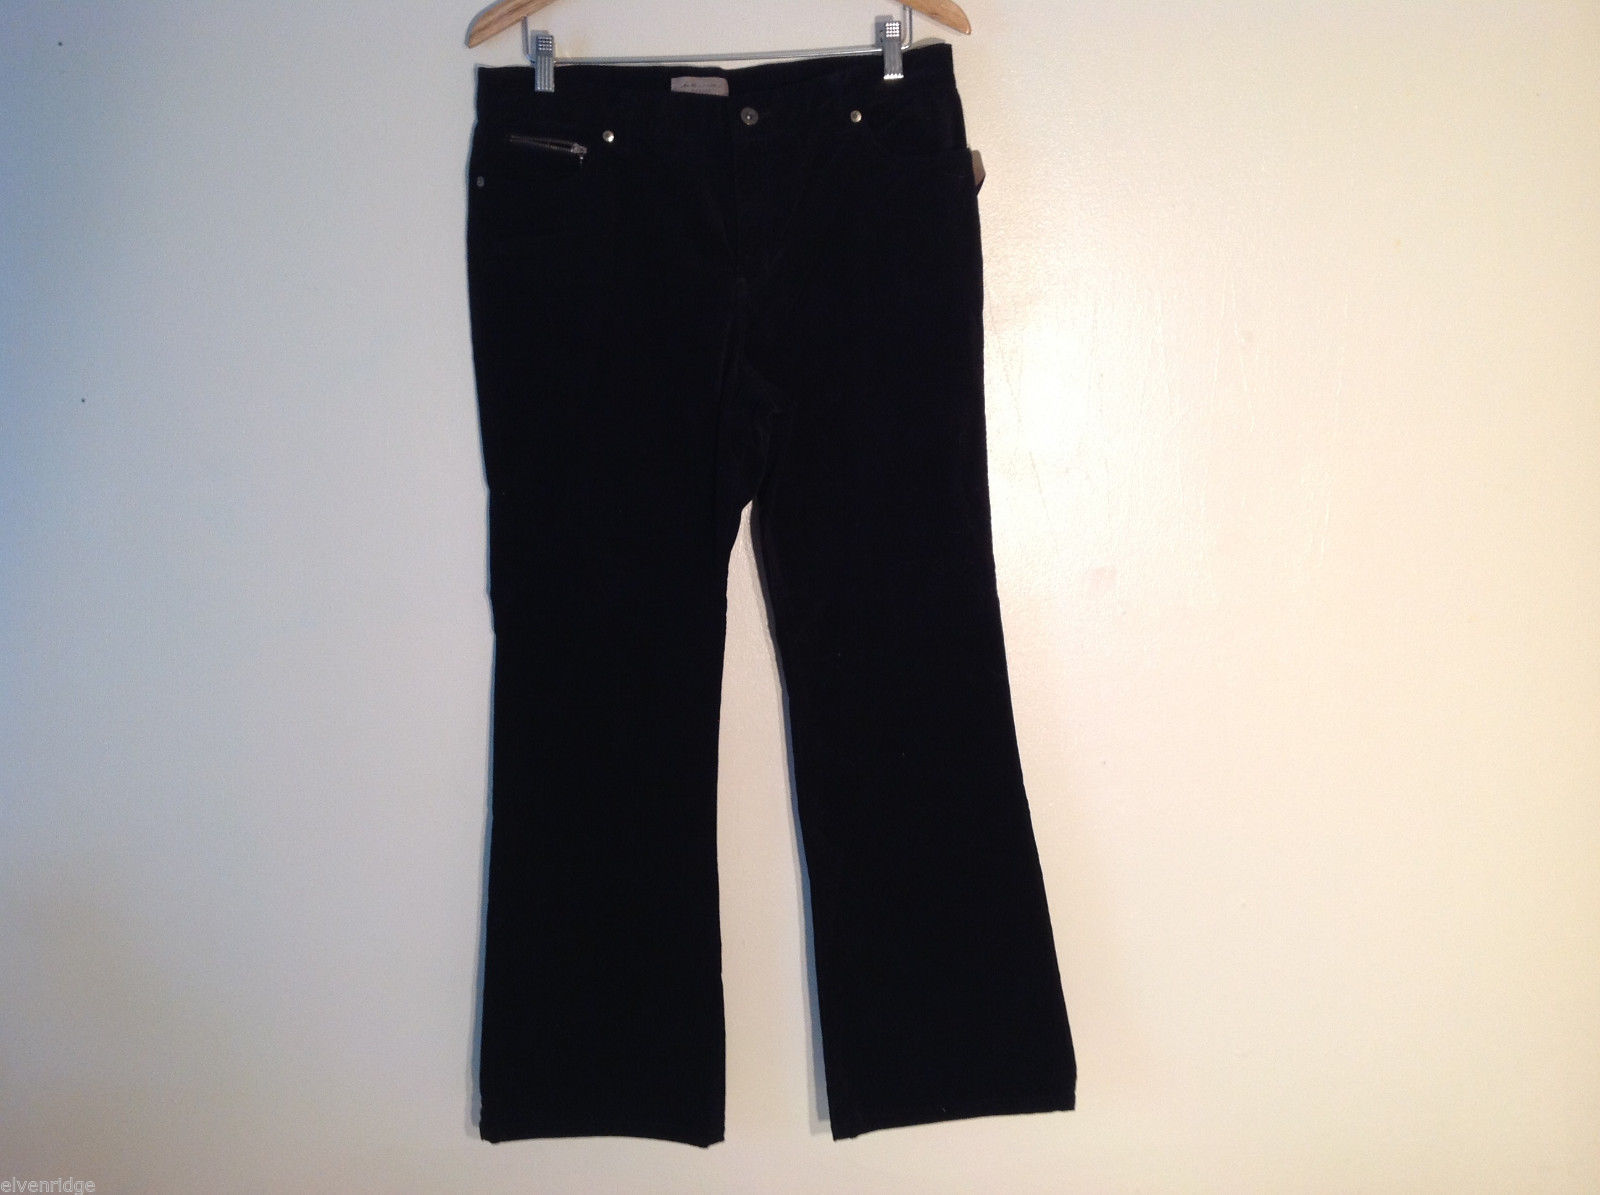 i.e. Women's Petite Size 14, 14P Pants Relaxed Fit Stretch Black Brushed Velvet